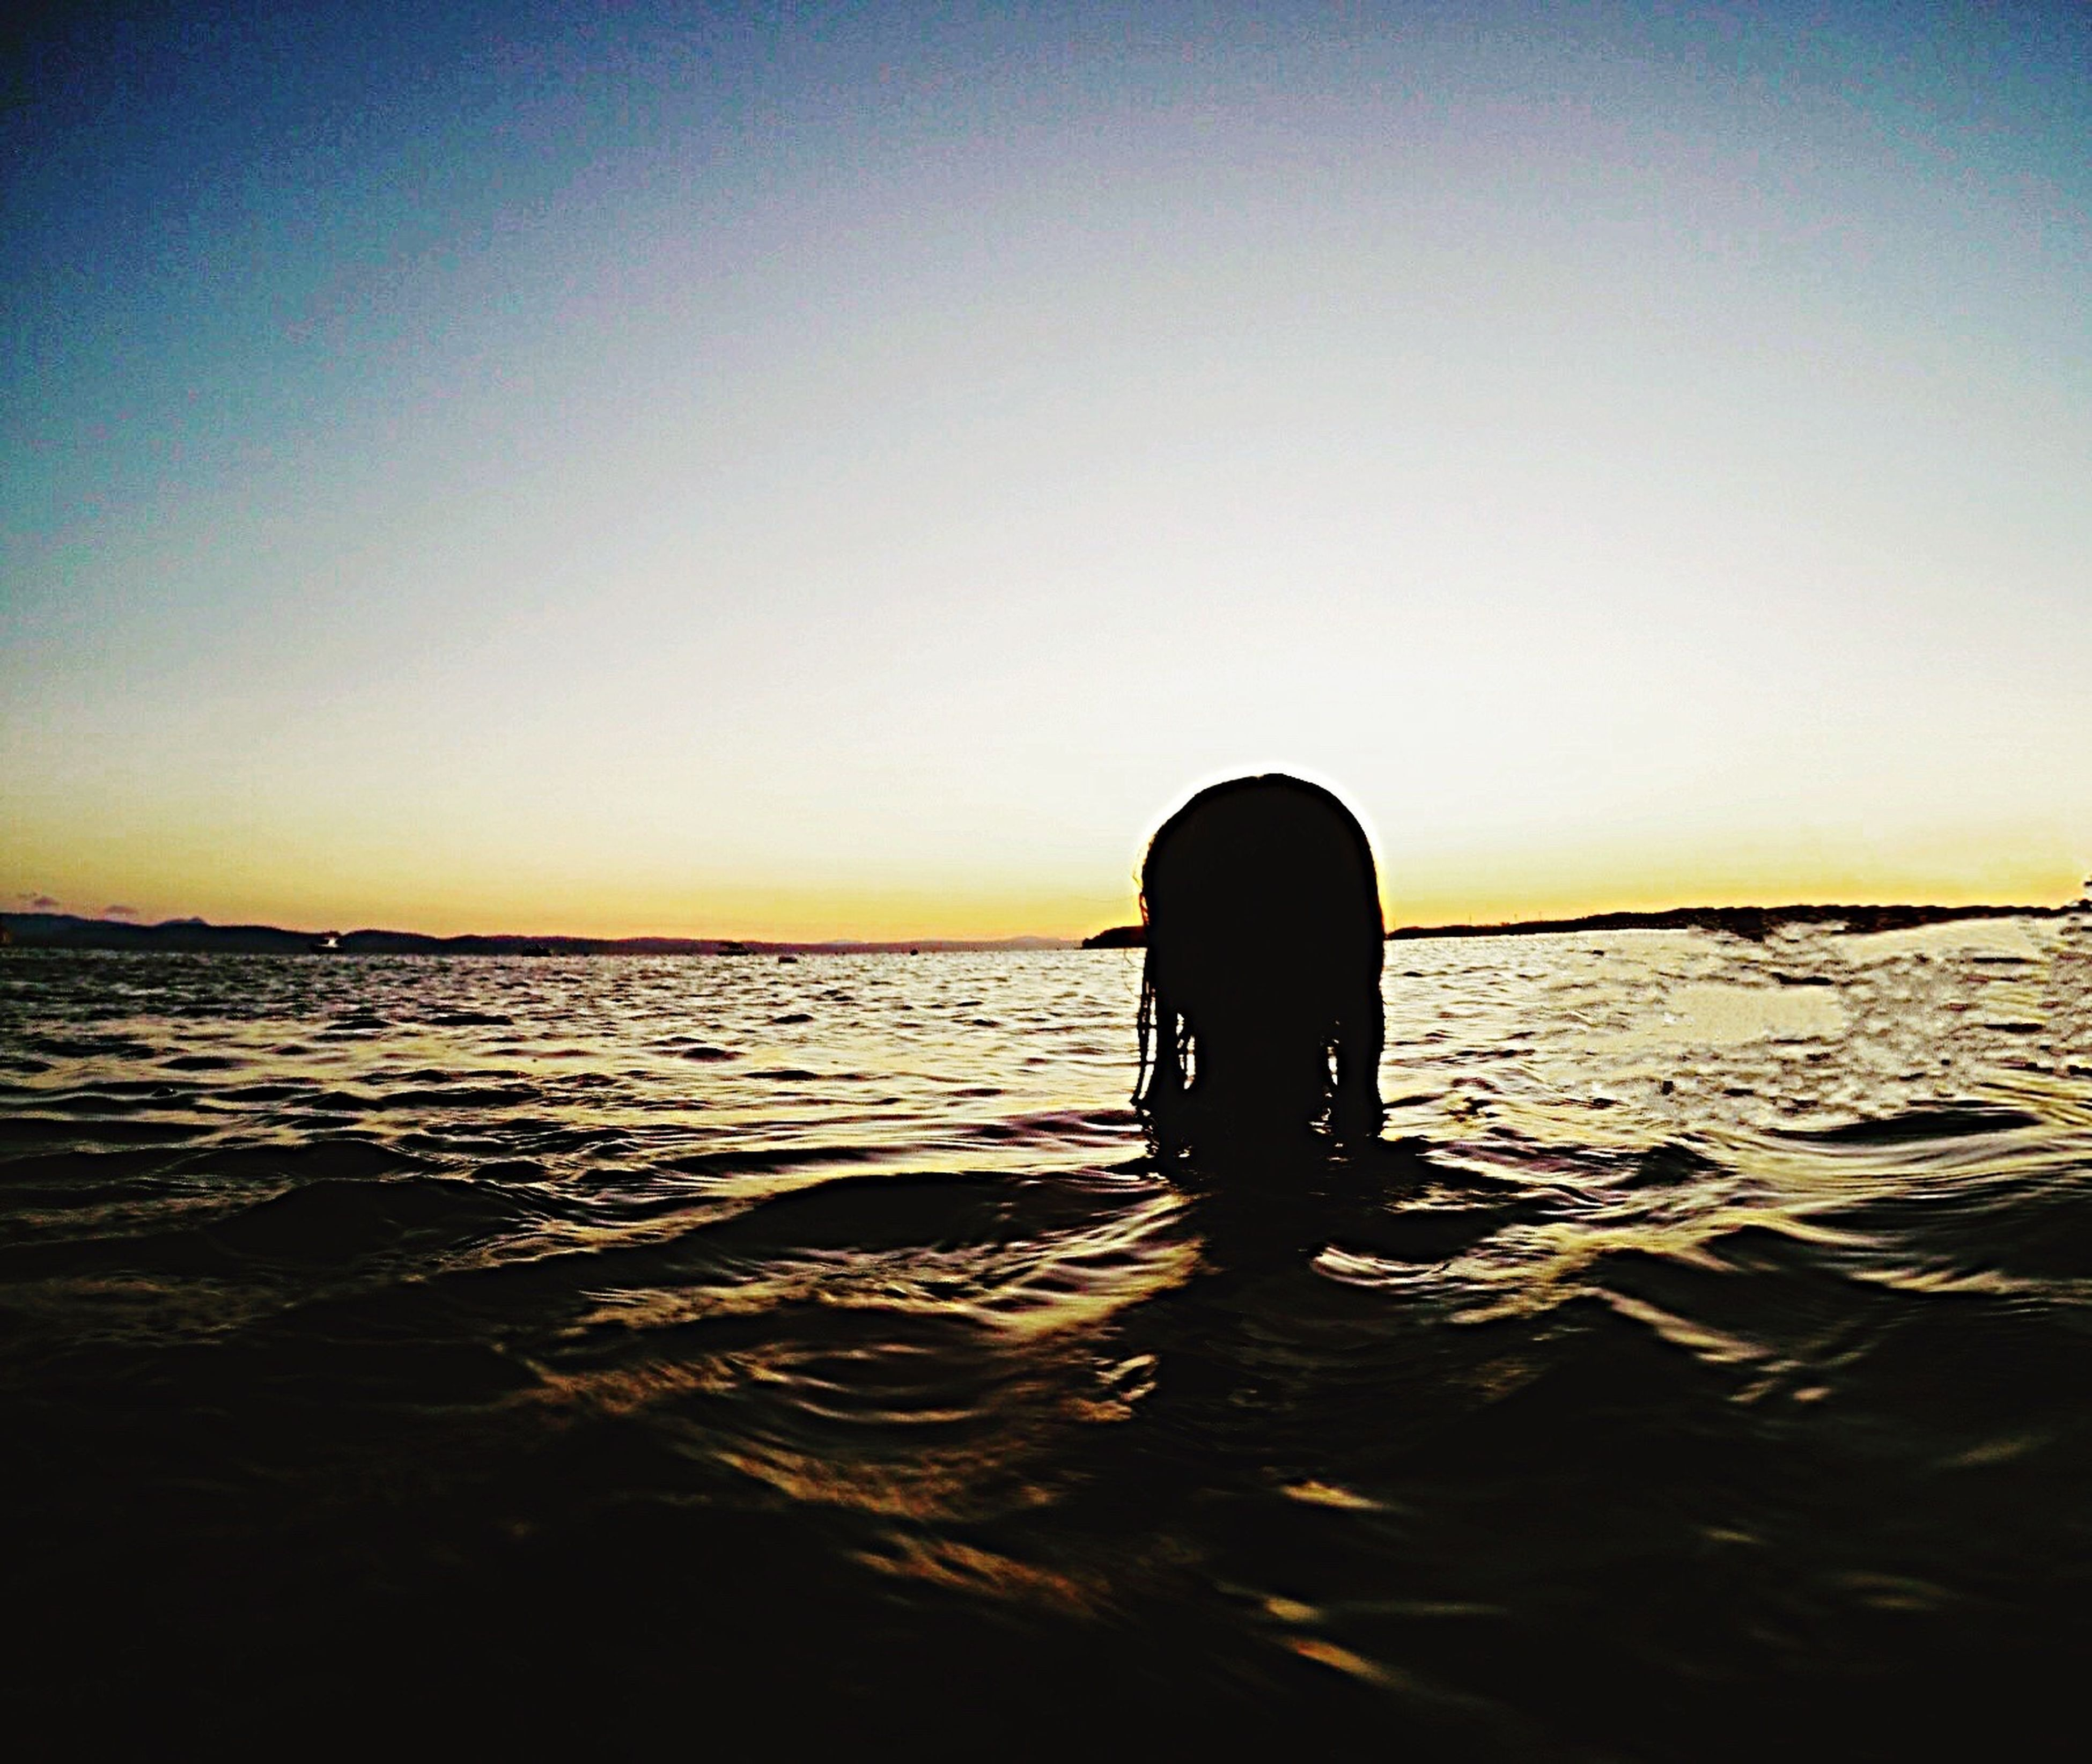 silhouette, sea, standing, copy space, clear sky, relaxation, horizon over water, water, tranquility, tranquil scene, escapism, scenics, alone, person, waterfront, rippled, blue, nature, solitude, beauty in nature, remote, getting away from it all, day, ocean, weekend activities, vacations